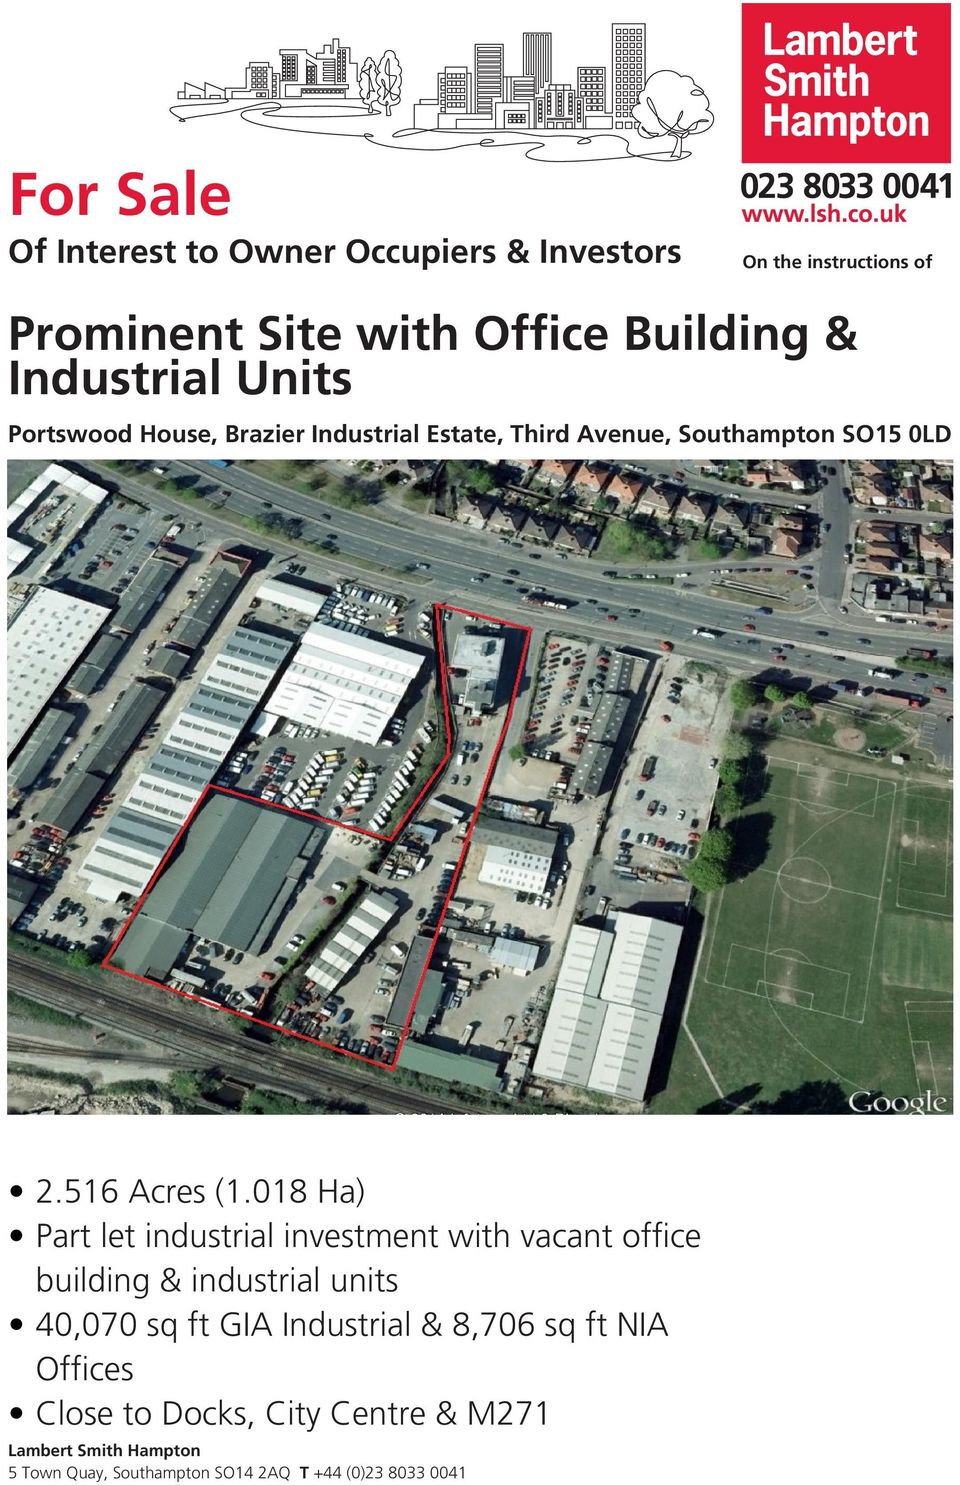 018 Ha) Part let industrial investment with vacant office building & industrial units 40,070 sq ft GIA Industrial &